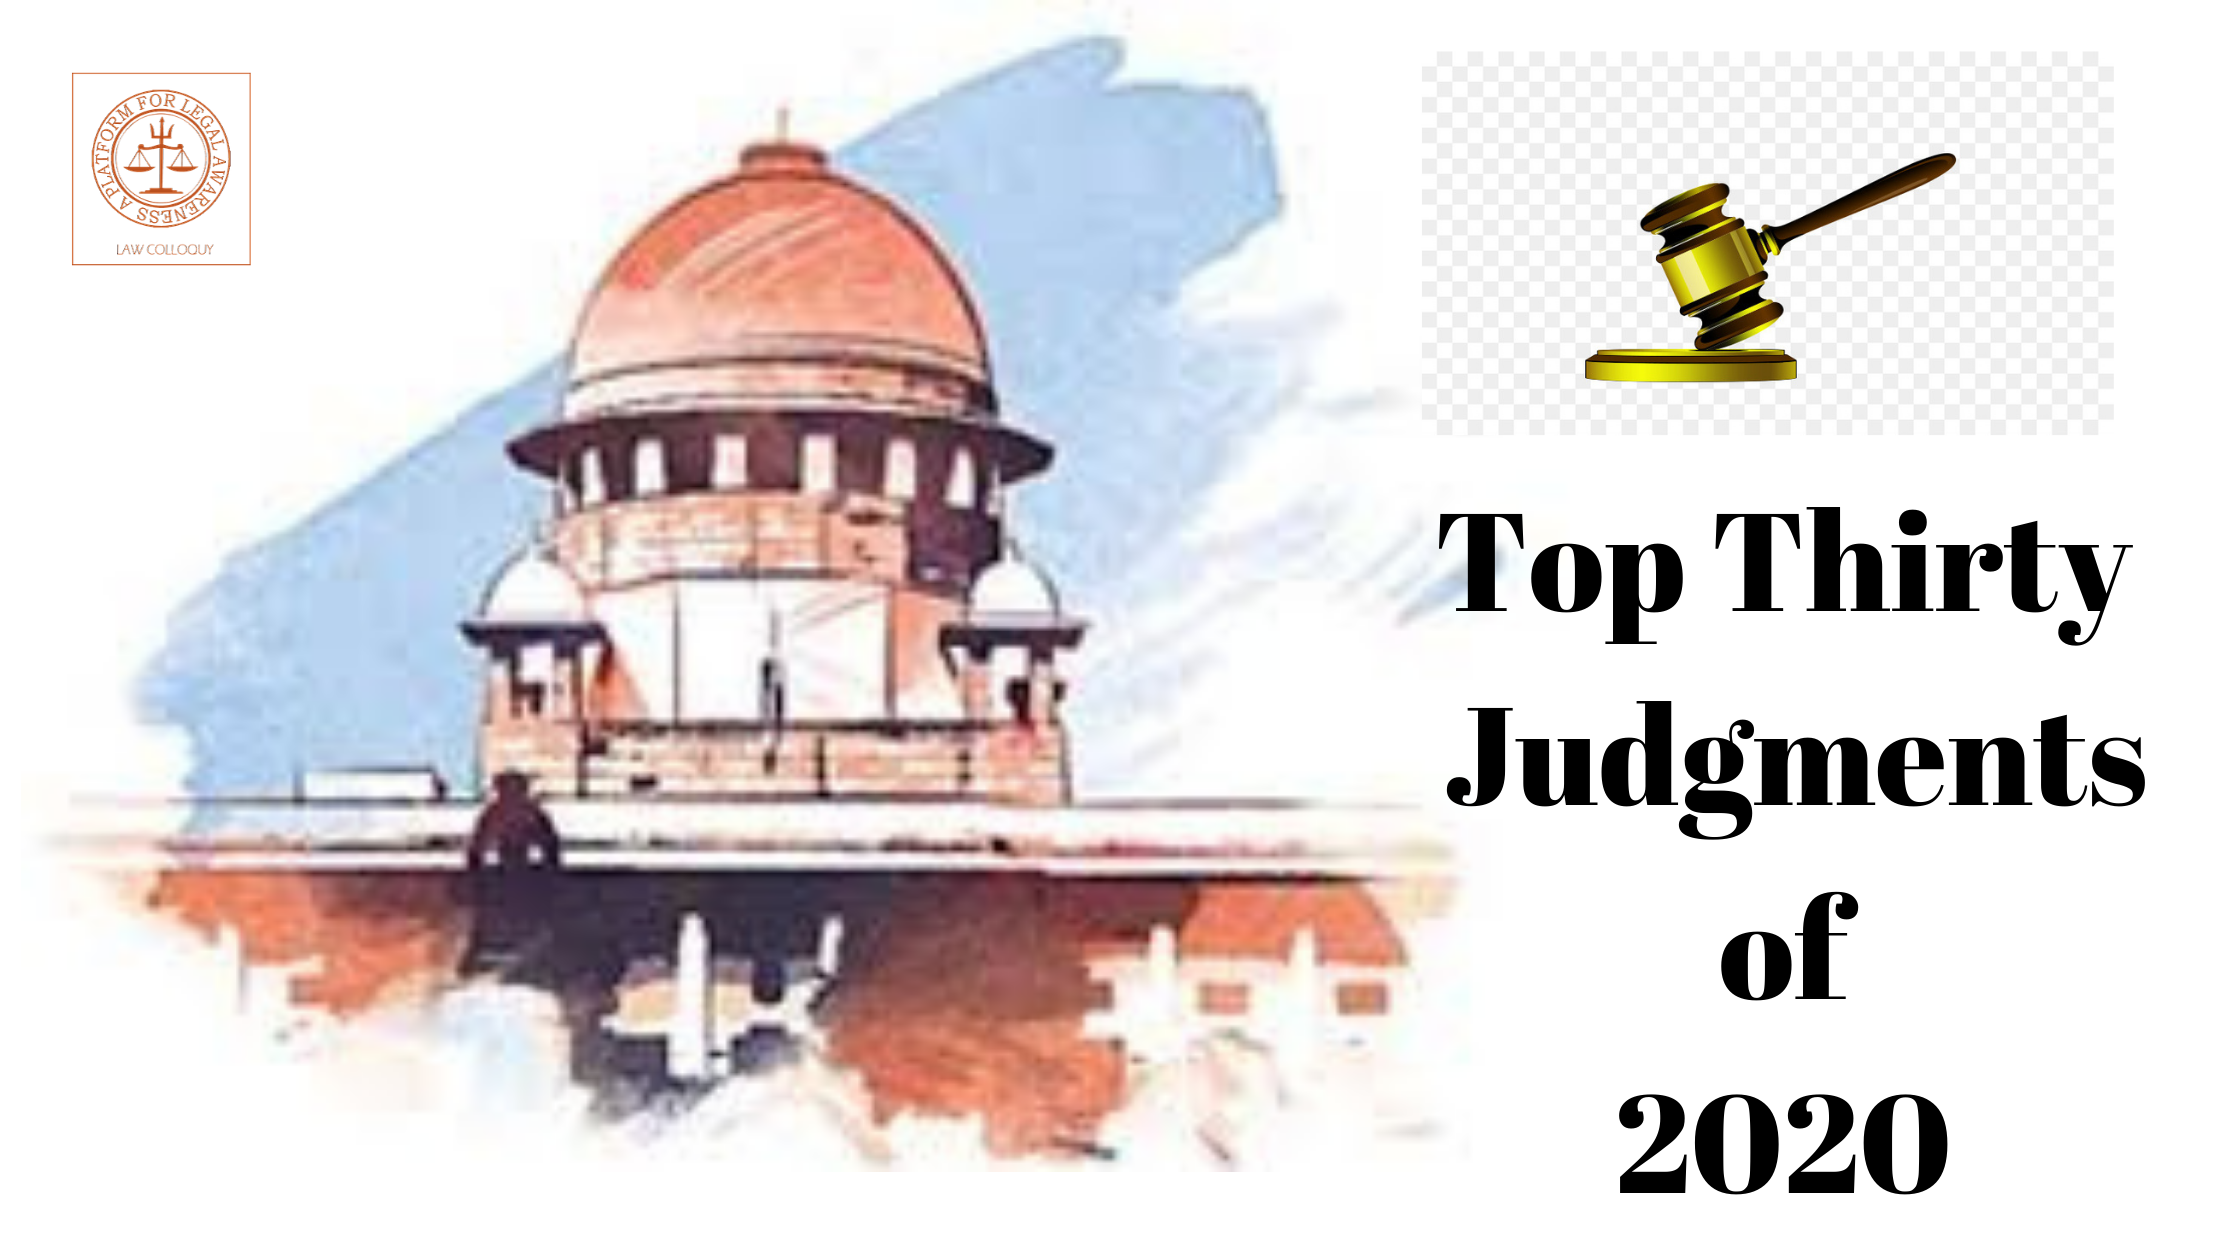 Top Thirty Supreme Court Judgements of India in 2020-2021